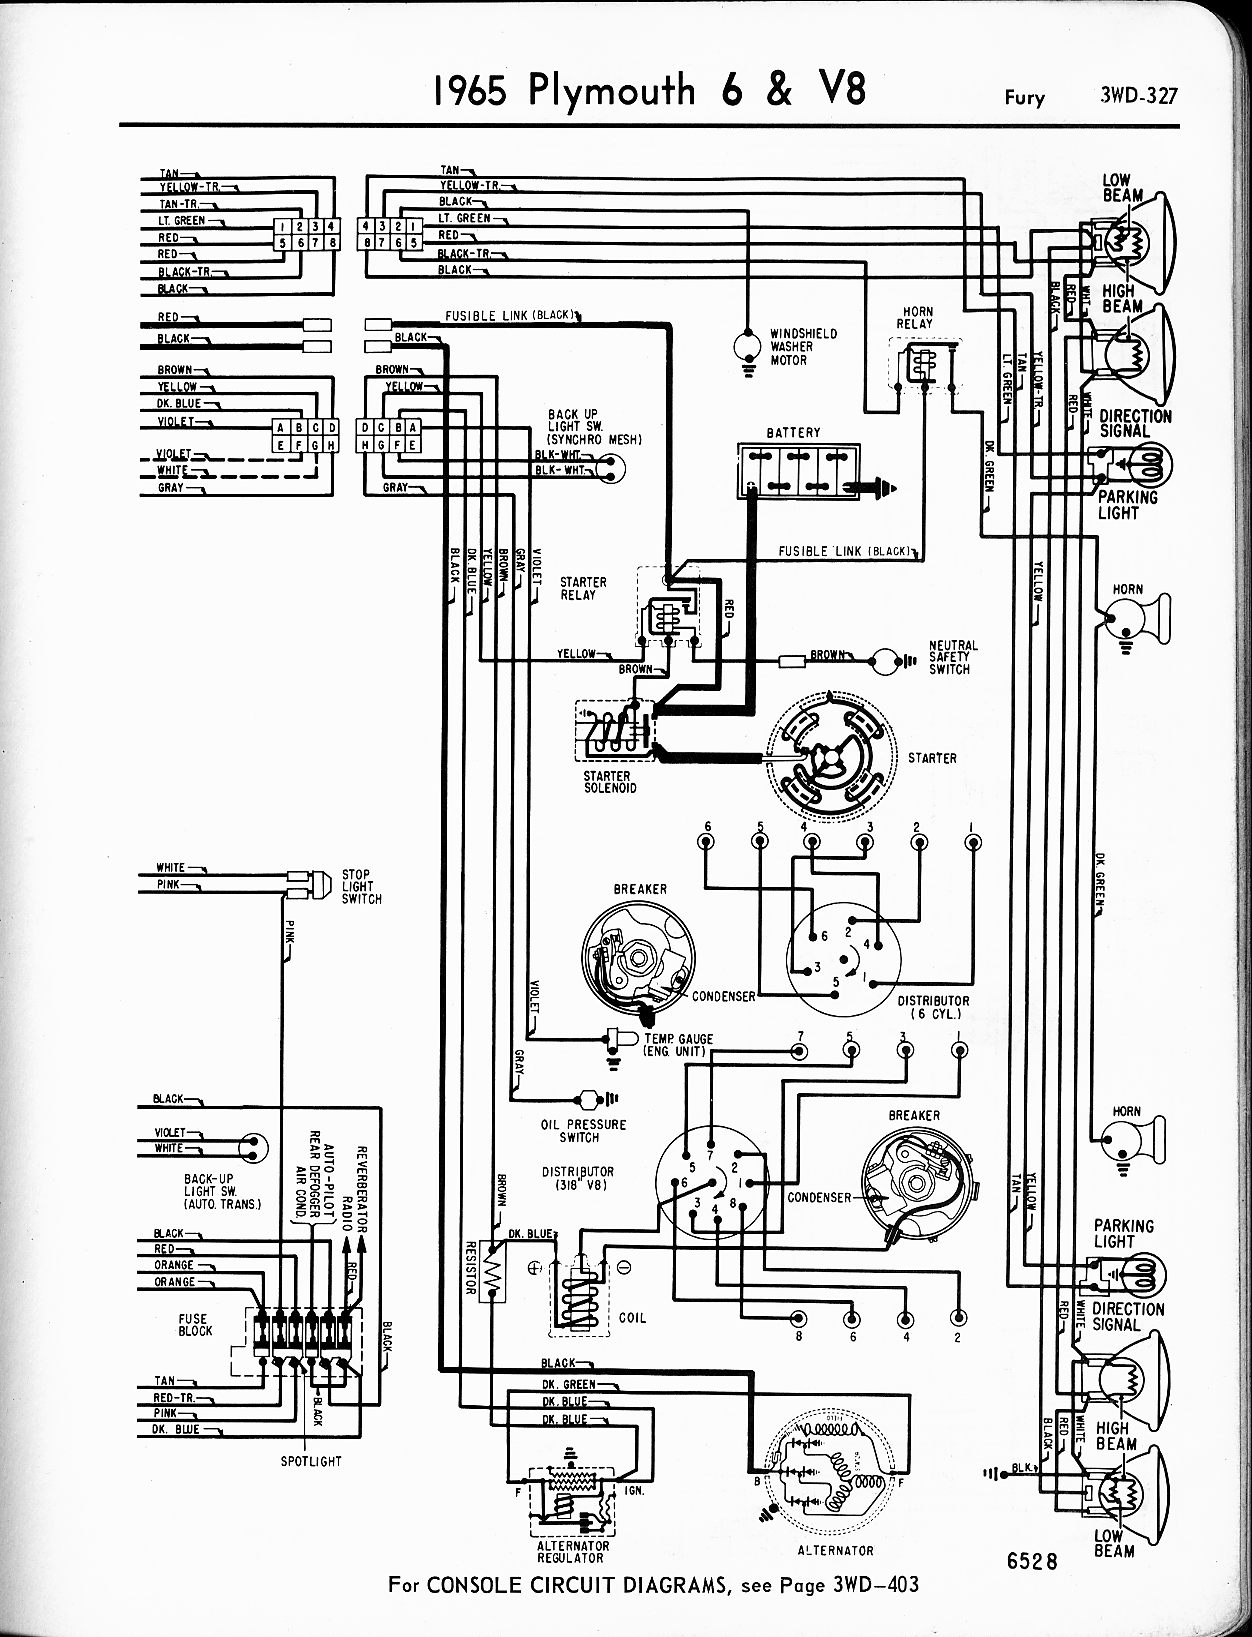 Email Wiring Diagram Schematics Guide Free Image About And Schematic 68 Satellite Modem Valiant